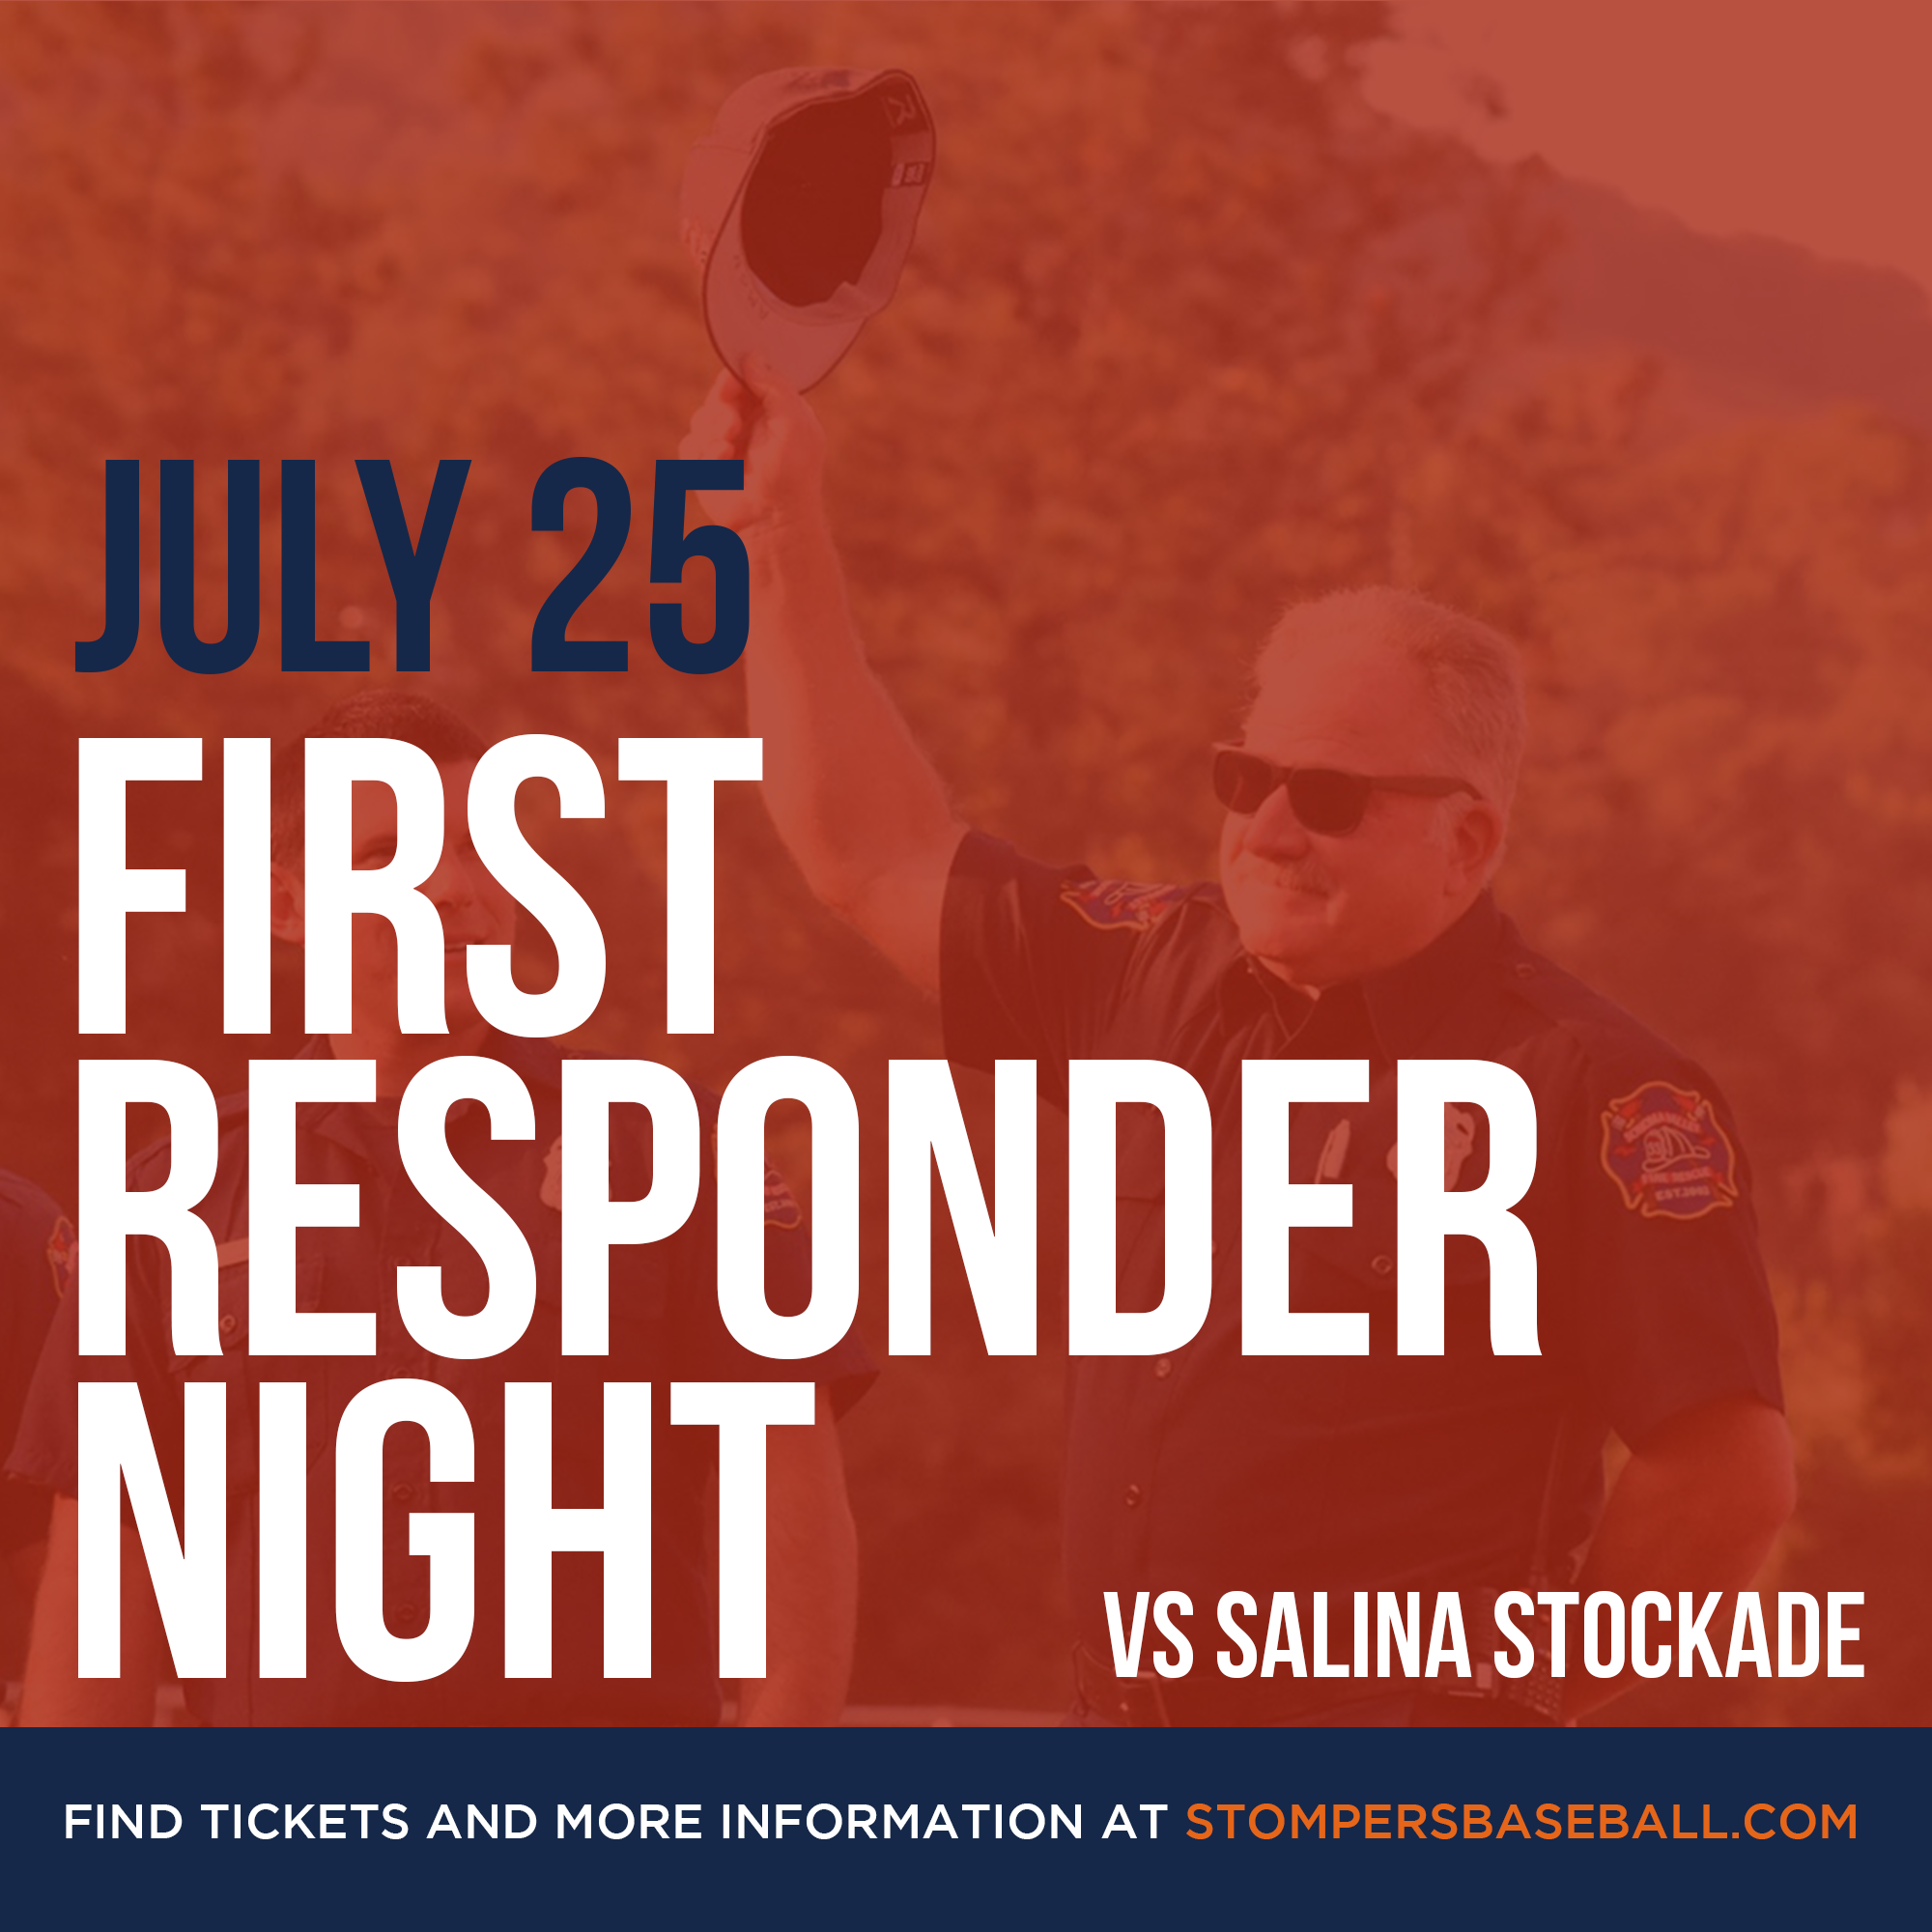 July 25: First Responder Night - Come out to Palooza Park at Arnold field to watch the Stompers take on the Salina Stockade and honor the first responders in our community!